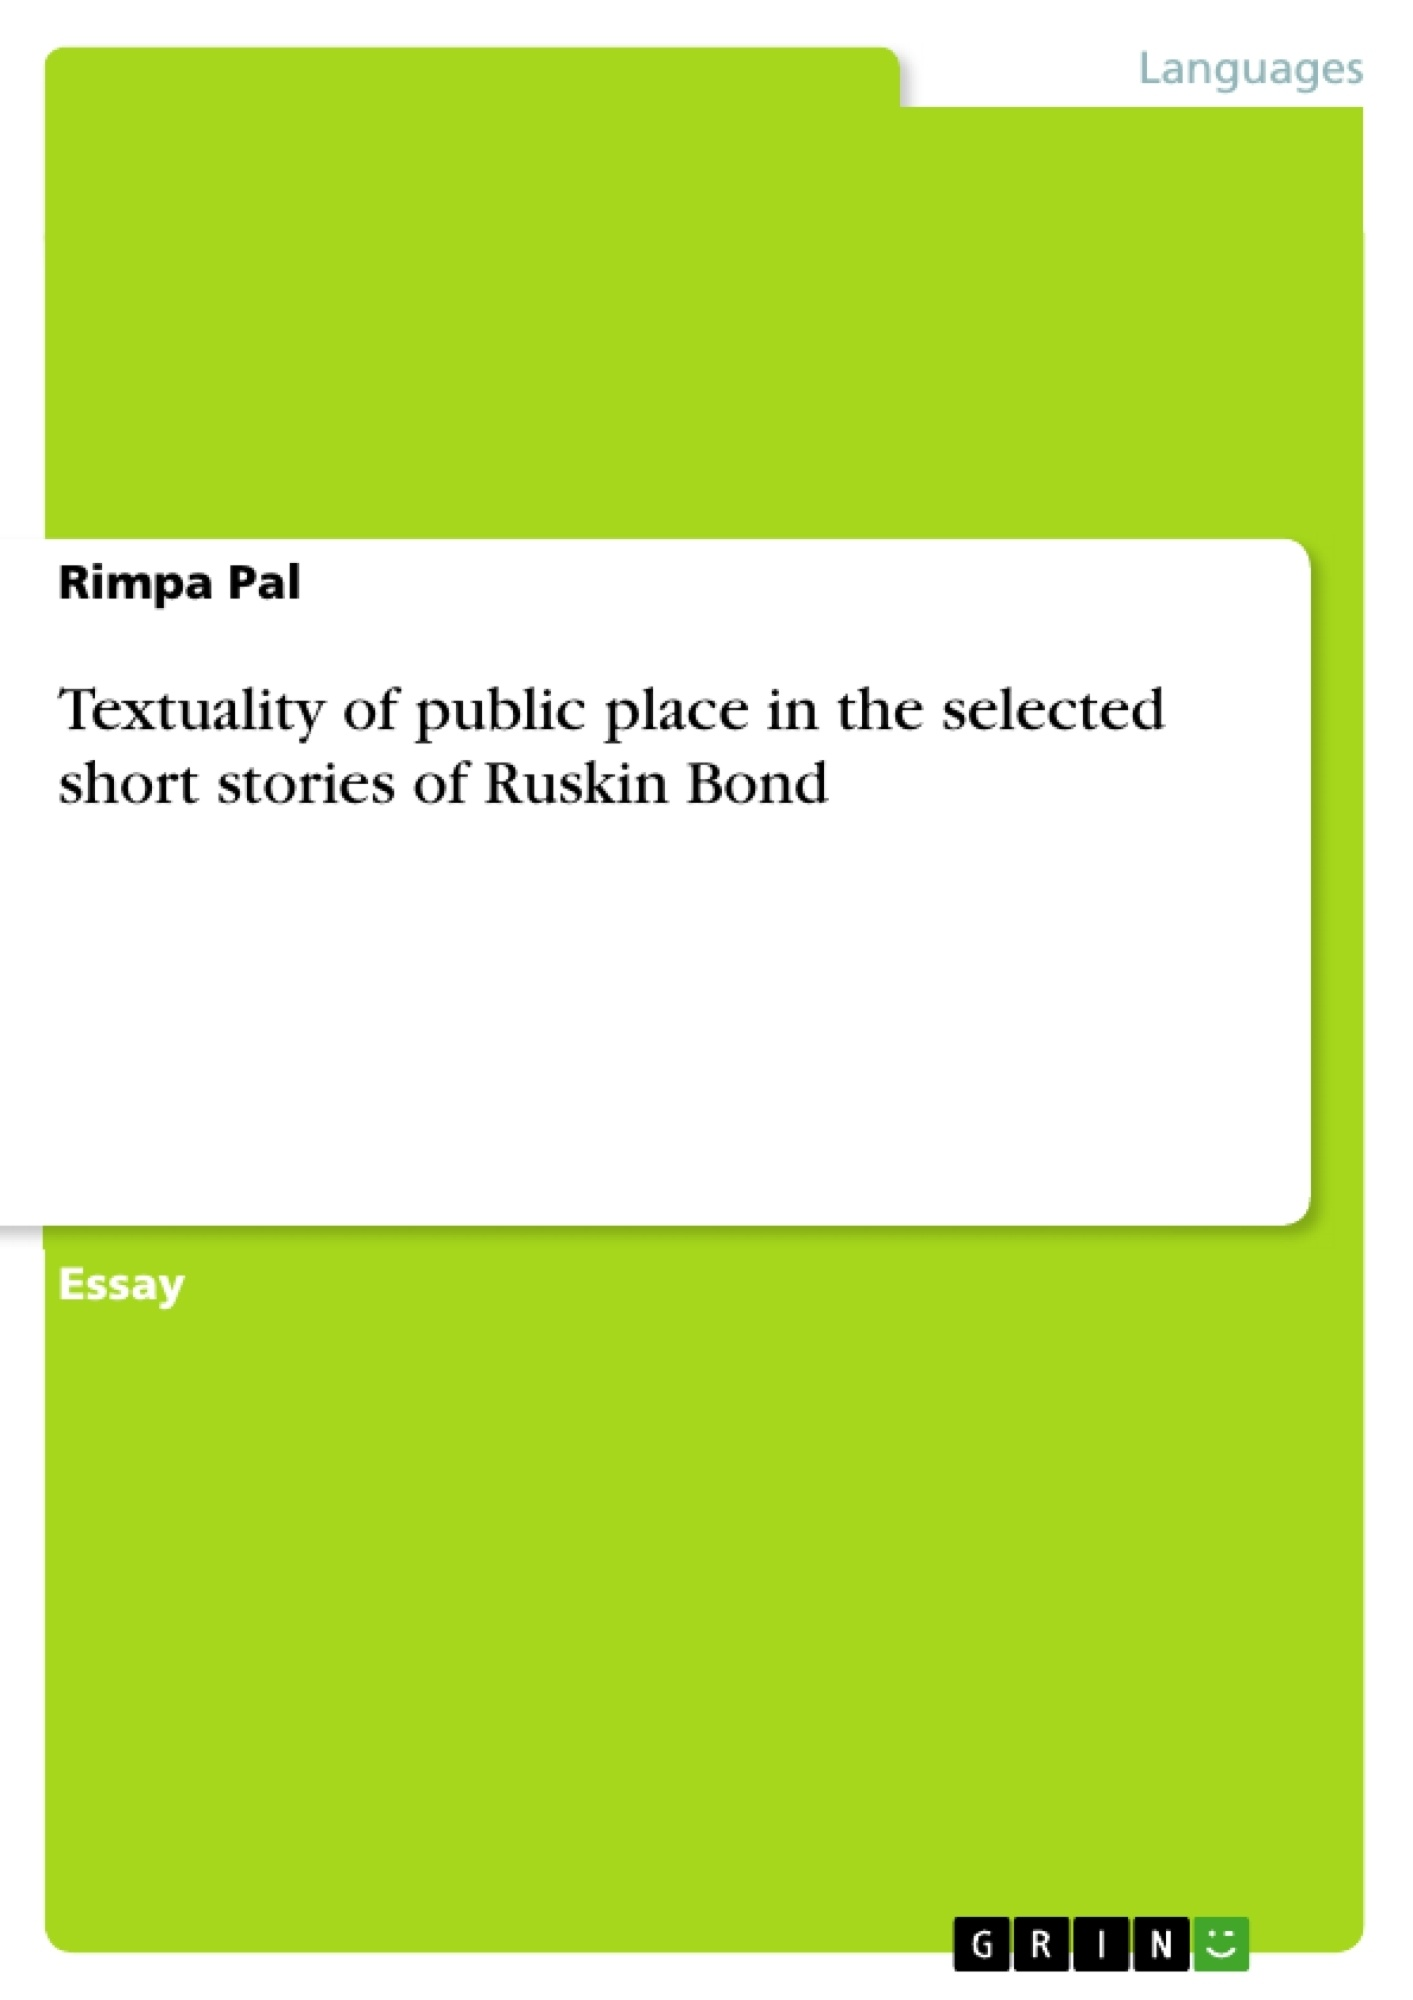 Title: Textuality of public place in the selected short stories of Ruskin Bond